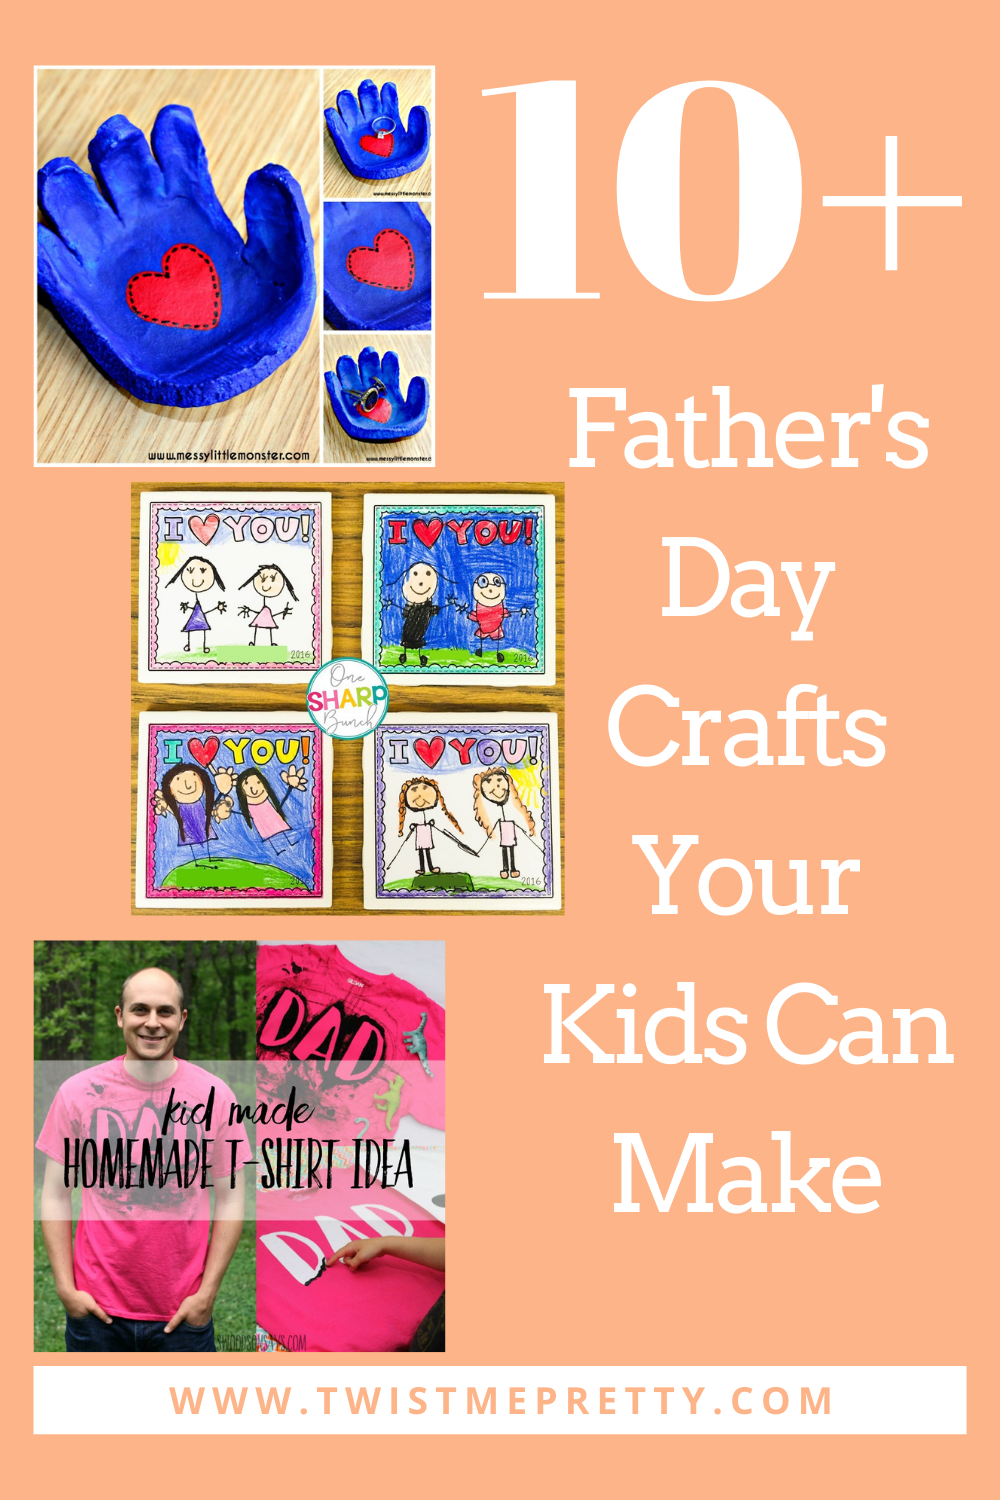 Father's Day Crafts Your Kids Can Make www.TwistMePretty.com